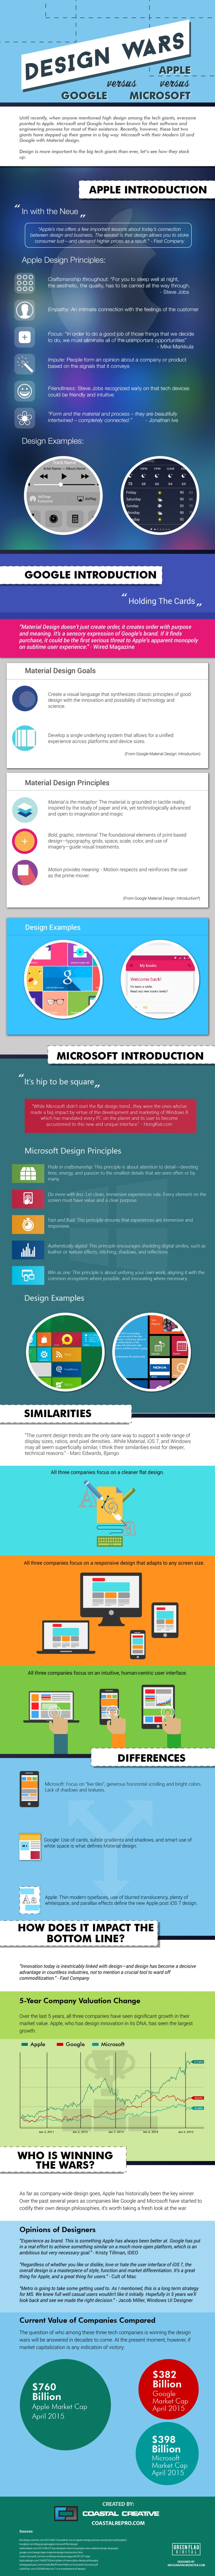 Apple, Google and Microsoft's approach to Design